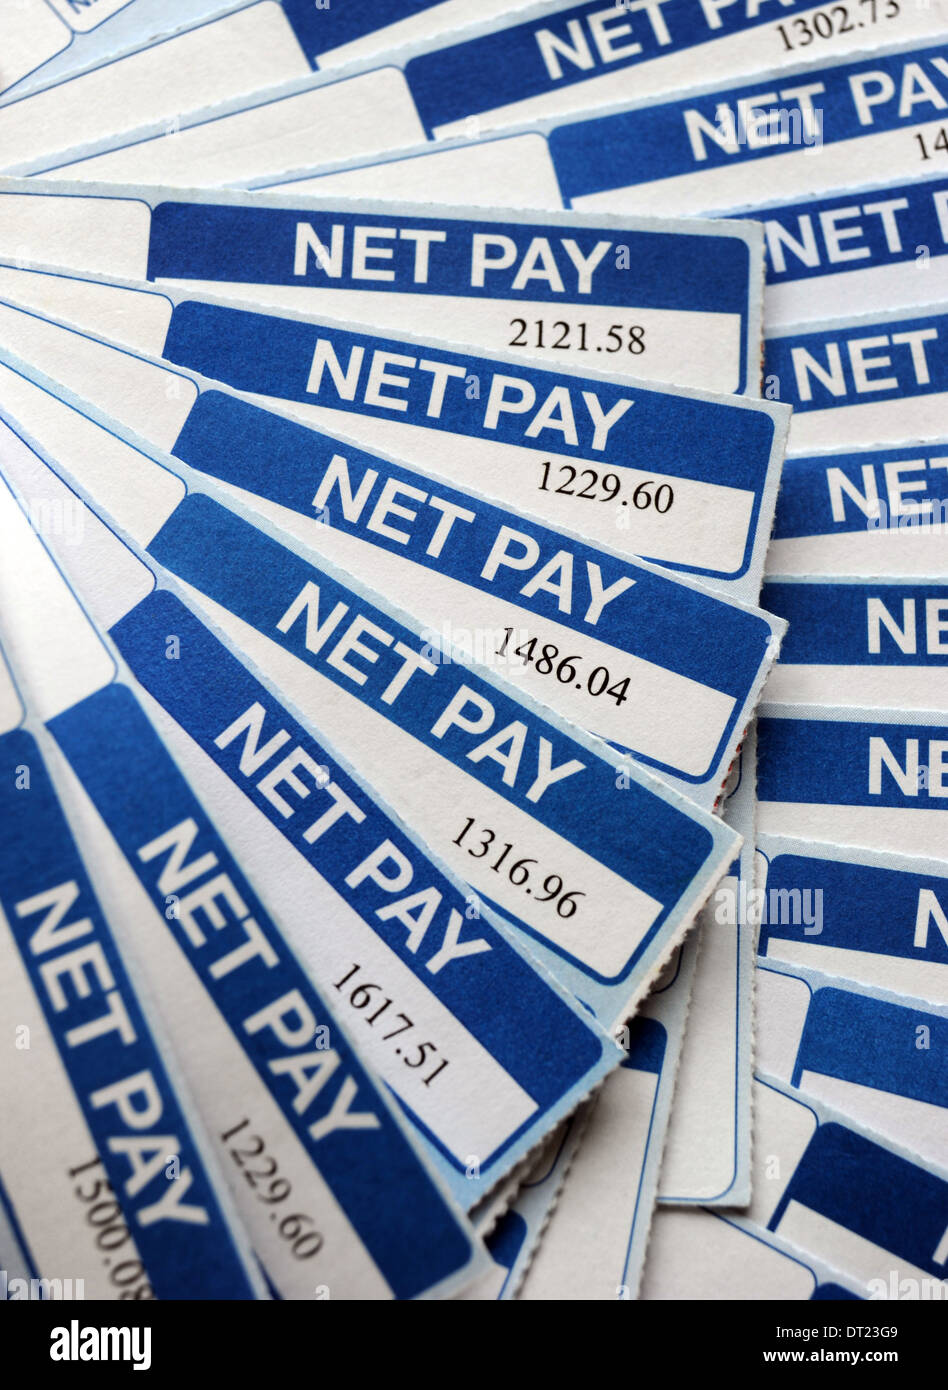 List Of Synonyms And Antonyms Of The Word Netpay